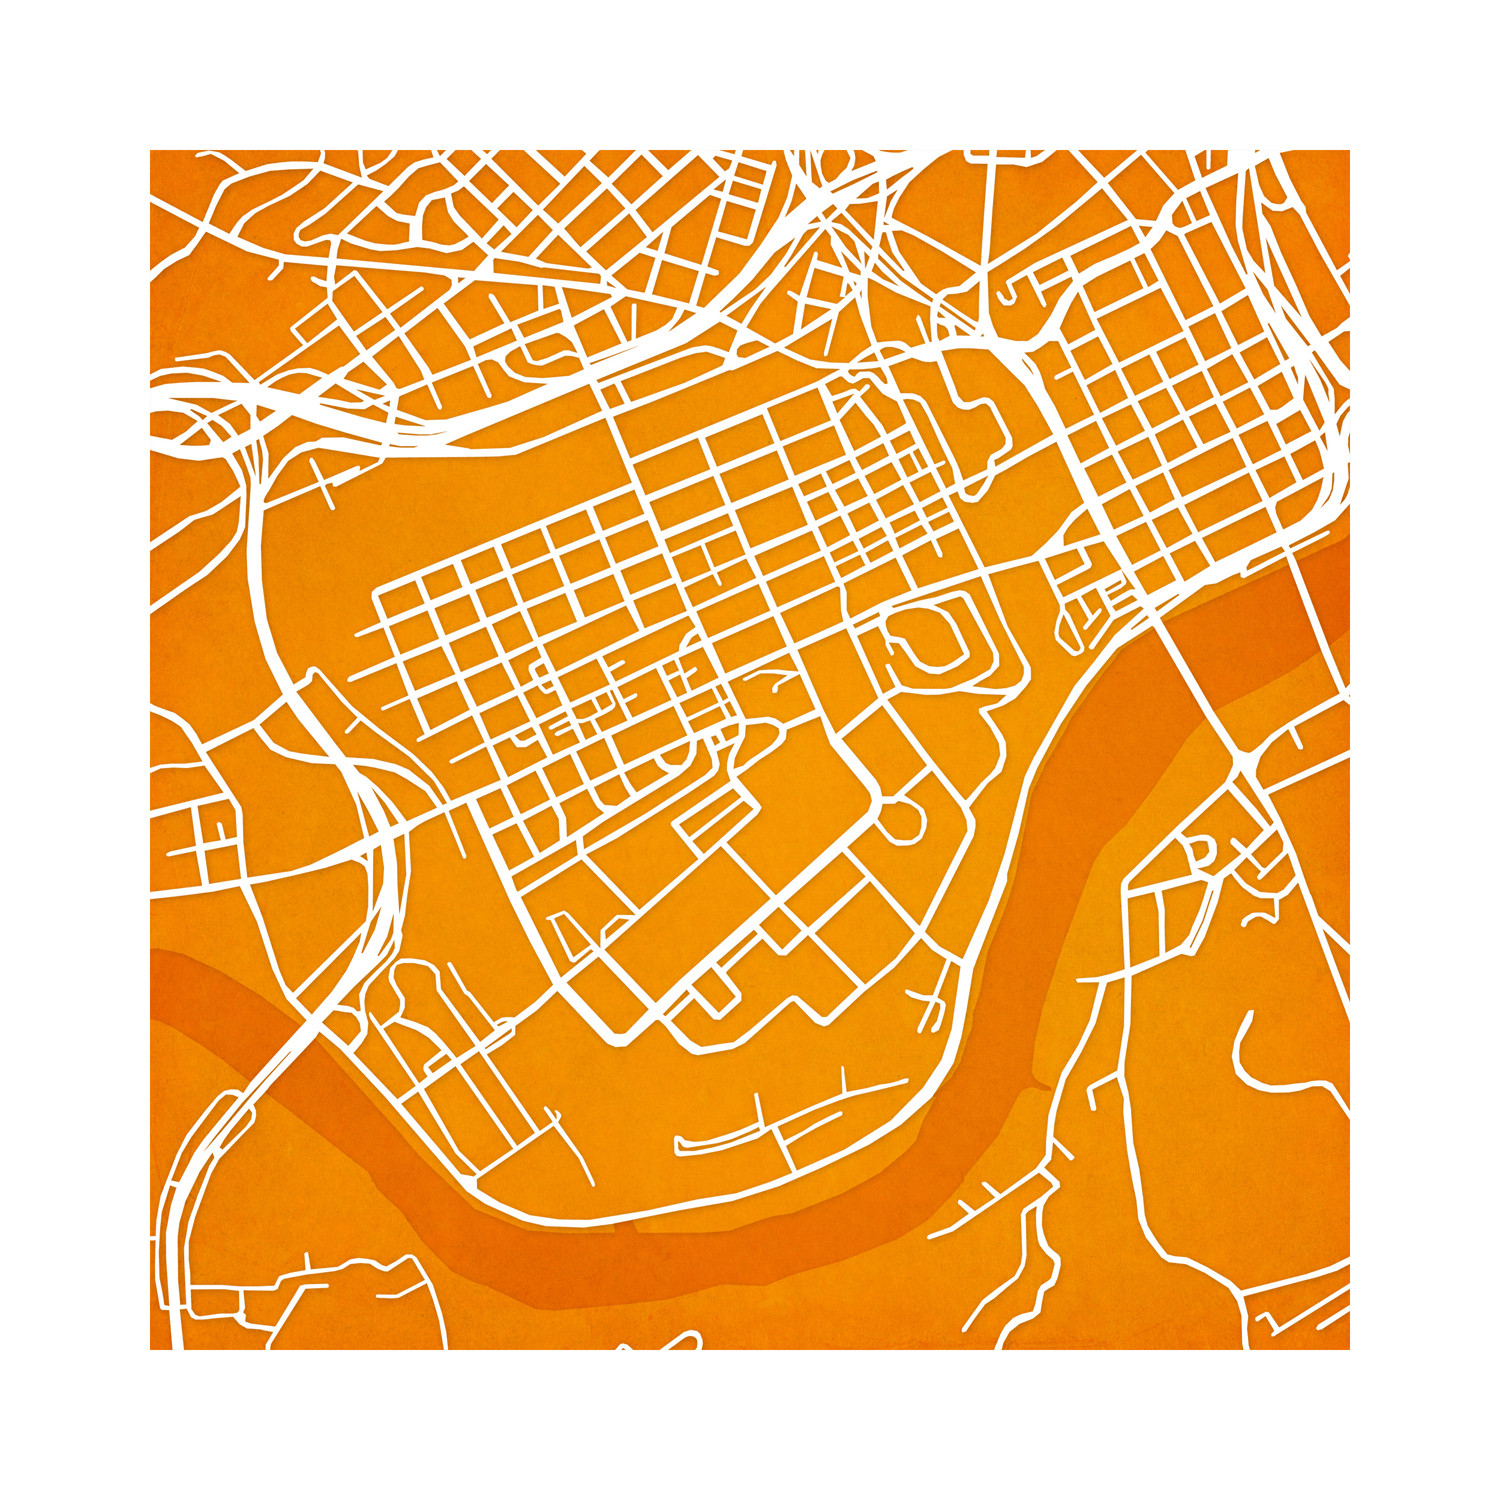 University Of Tennessee Knoxville Campus Map.University Of Tennessee At Knoxville Campus Maps Touch Of Modern